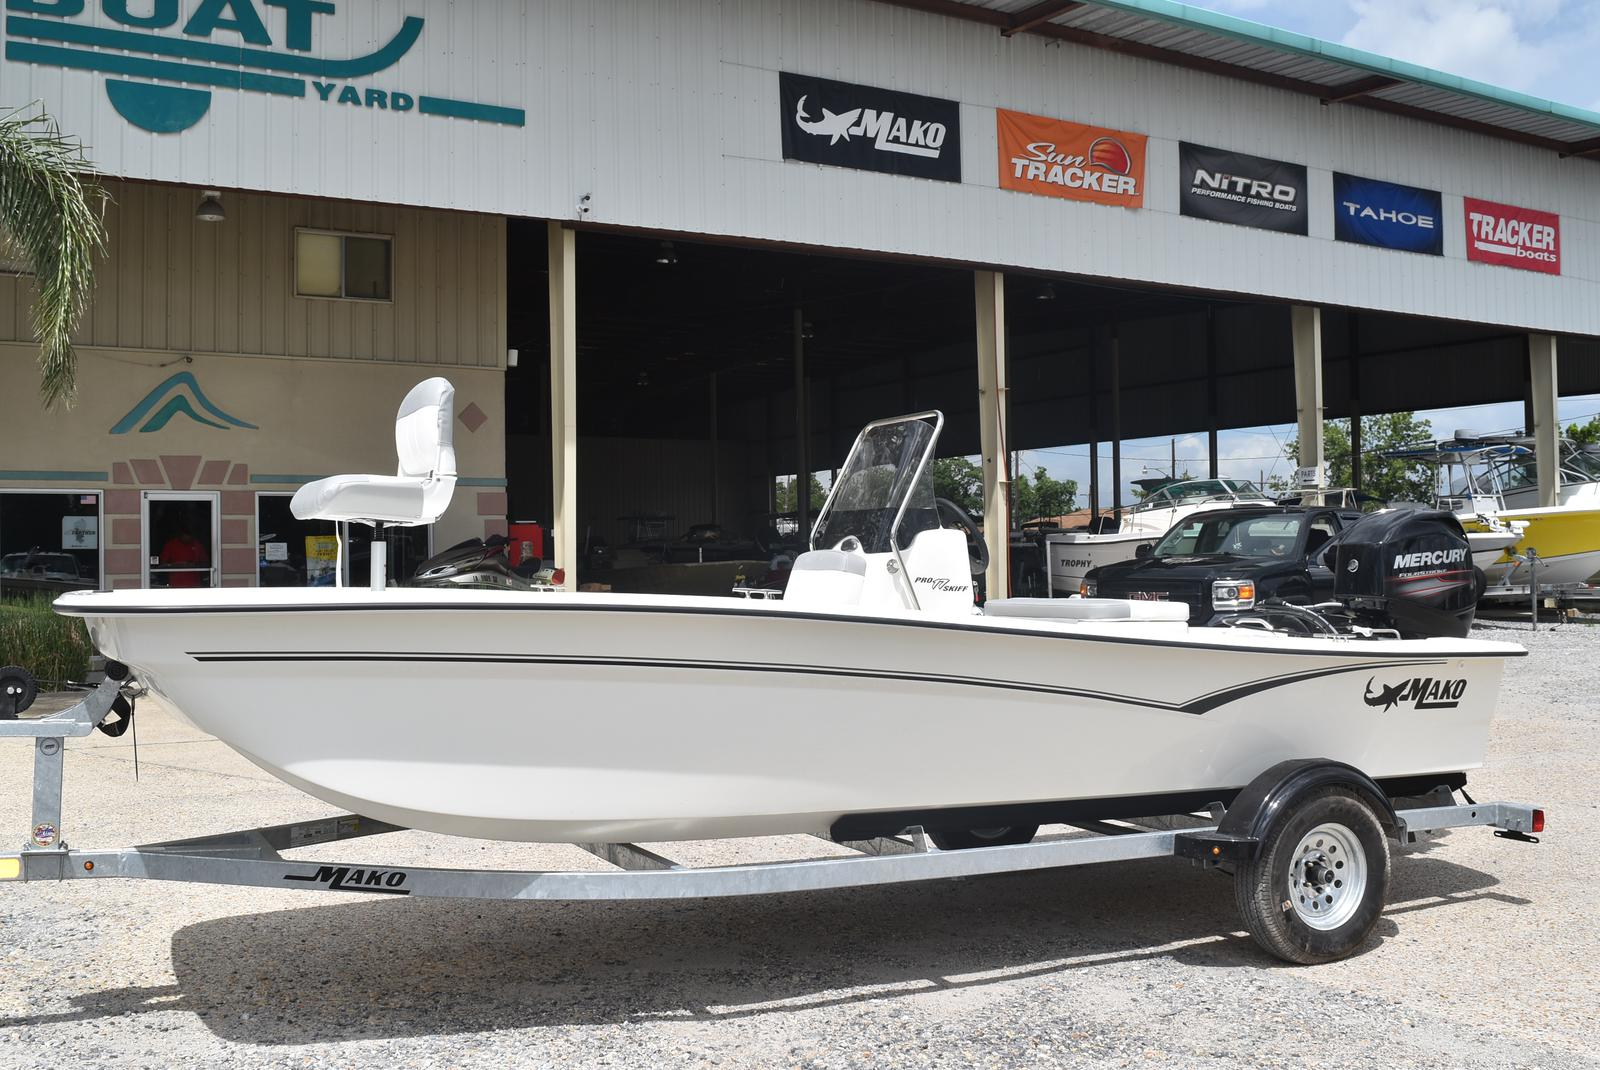 2020 Mako boat for sale, model of the boat is Pro Skiff 17, 75 ELPT & Image # 141 of 702